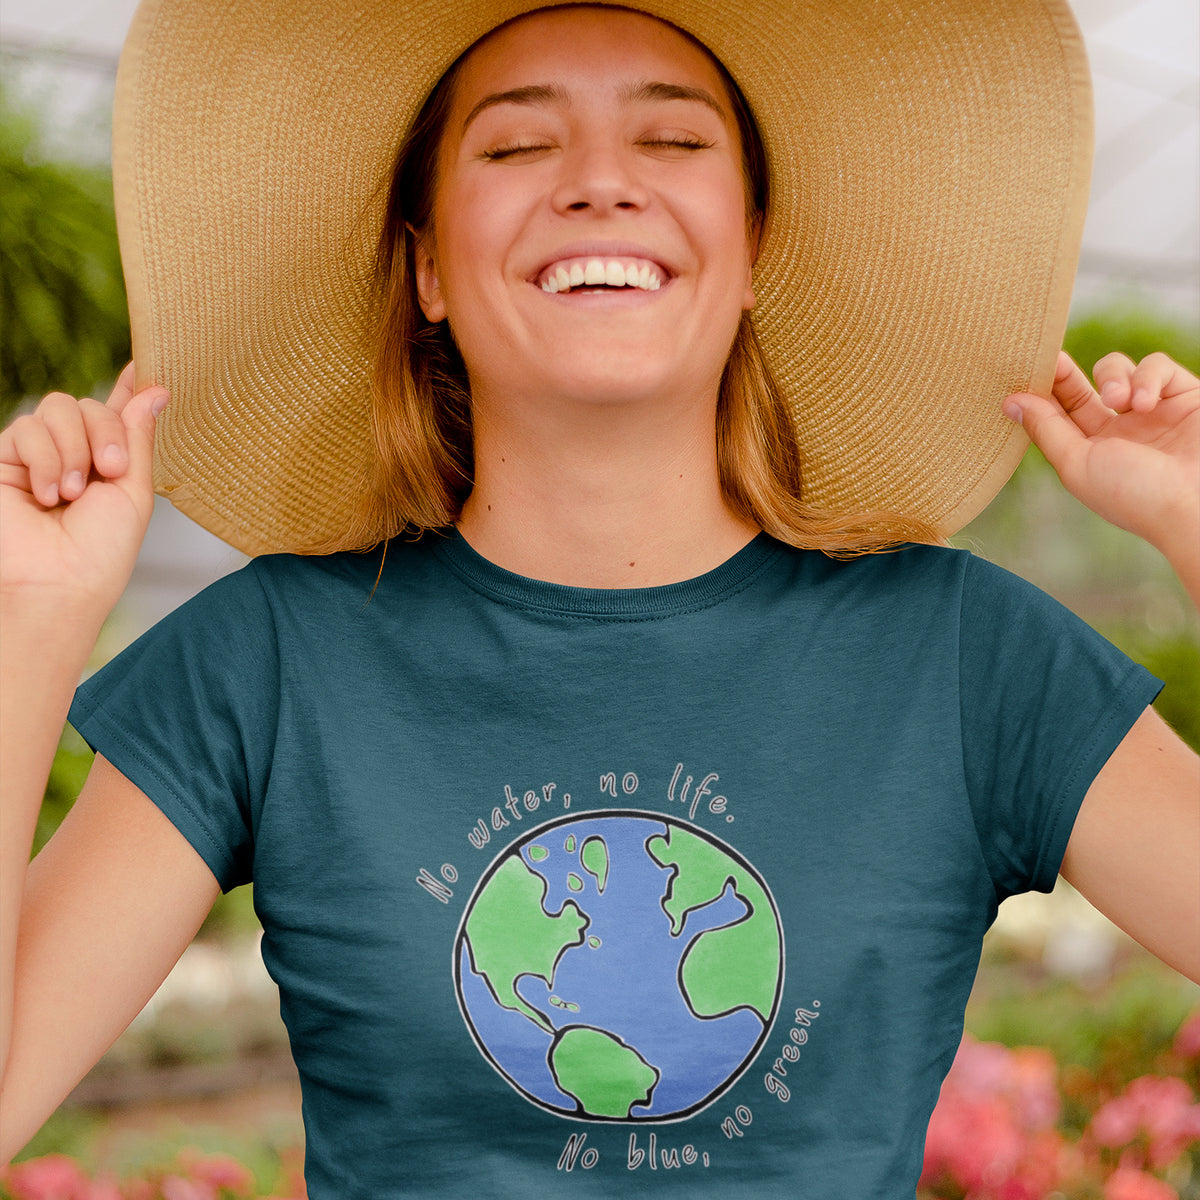 "girl in greenhouse with flowers and sunhat wearing Connected Clothing Company ""No Blue No Green"" tshirt - 10% of profits give back to non-profit organizations - ethically and sustainably made clothing"